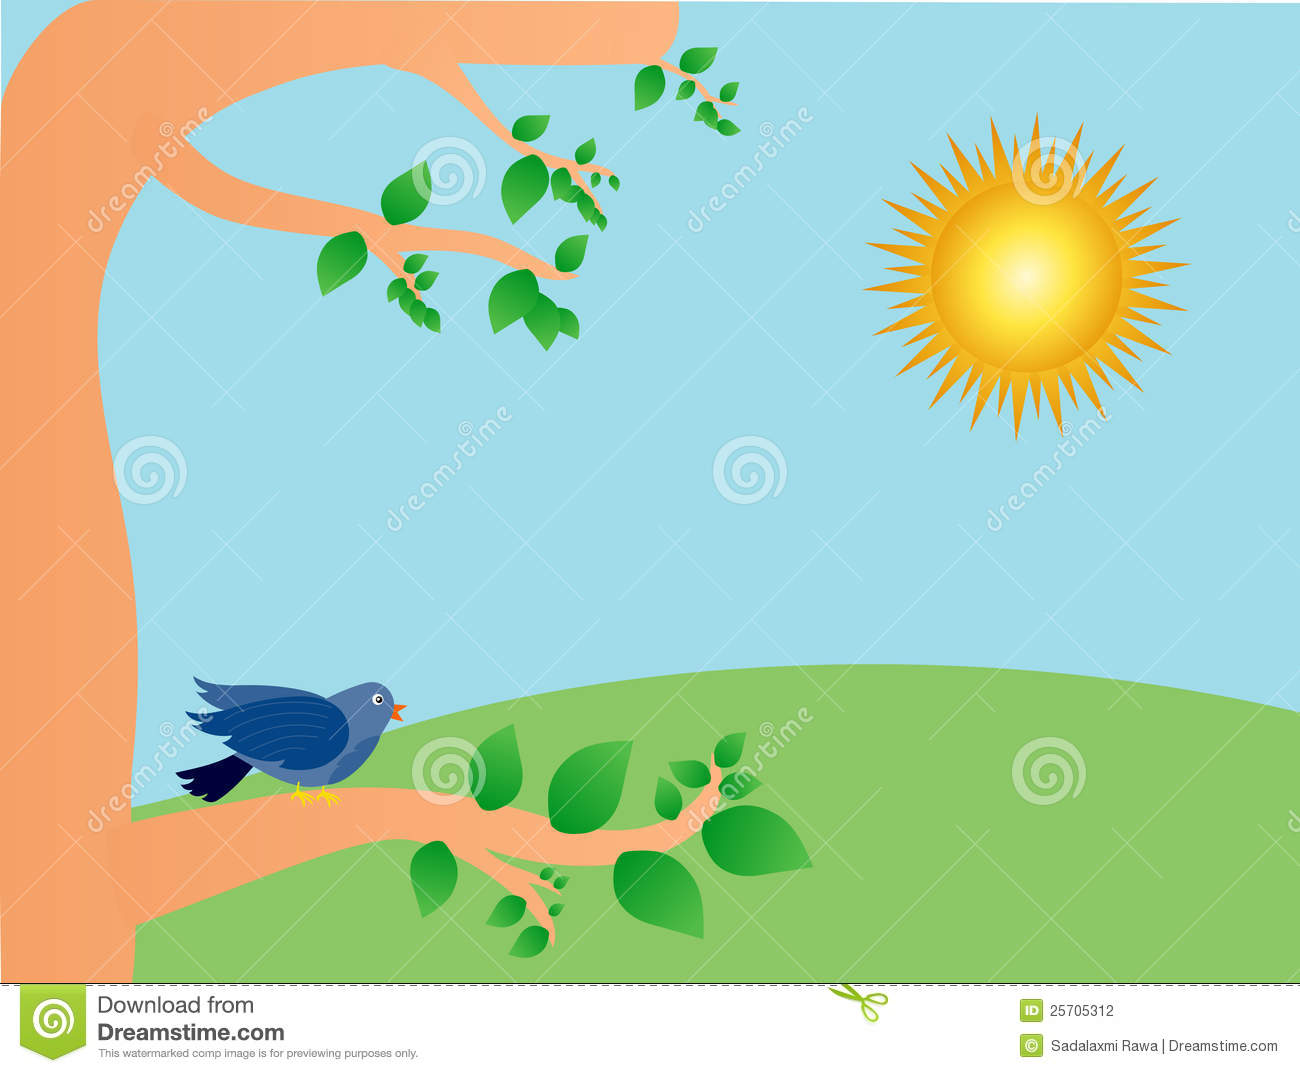 55+ Sunny Day Clipart.